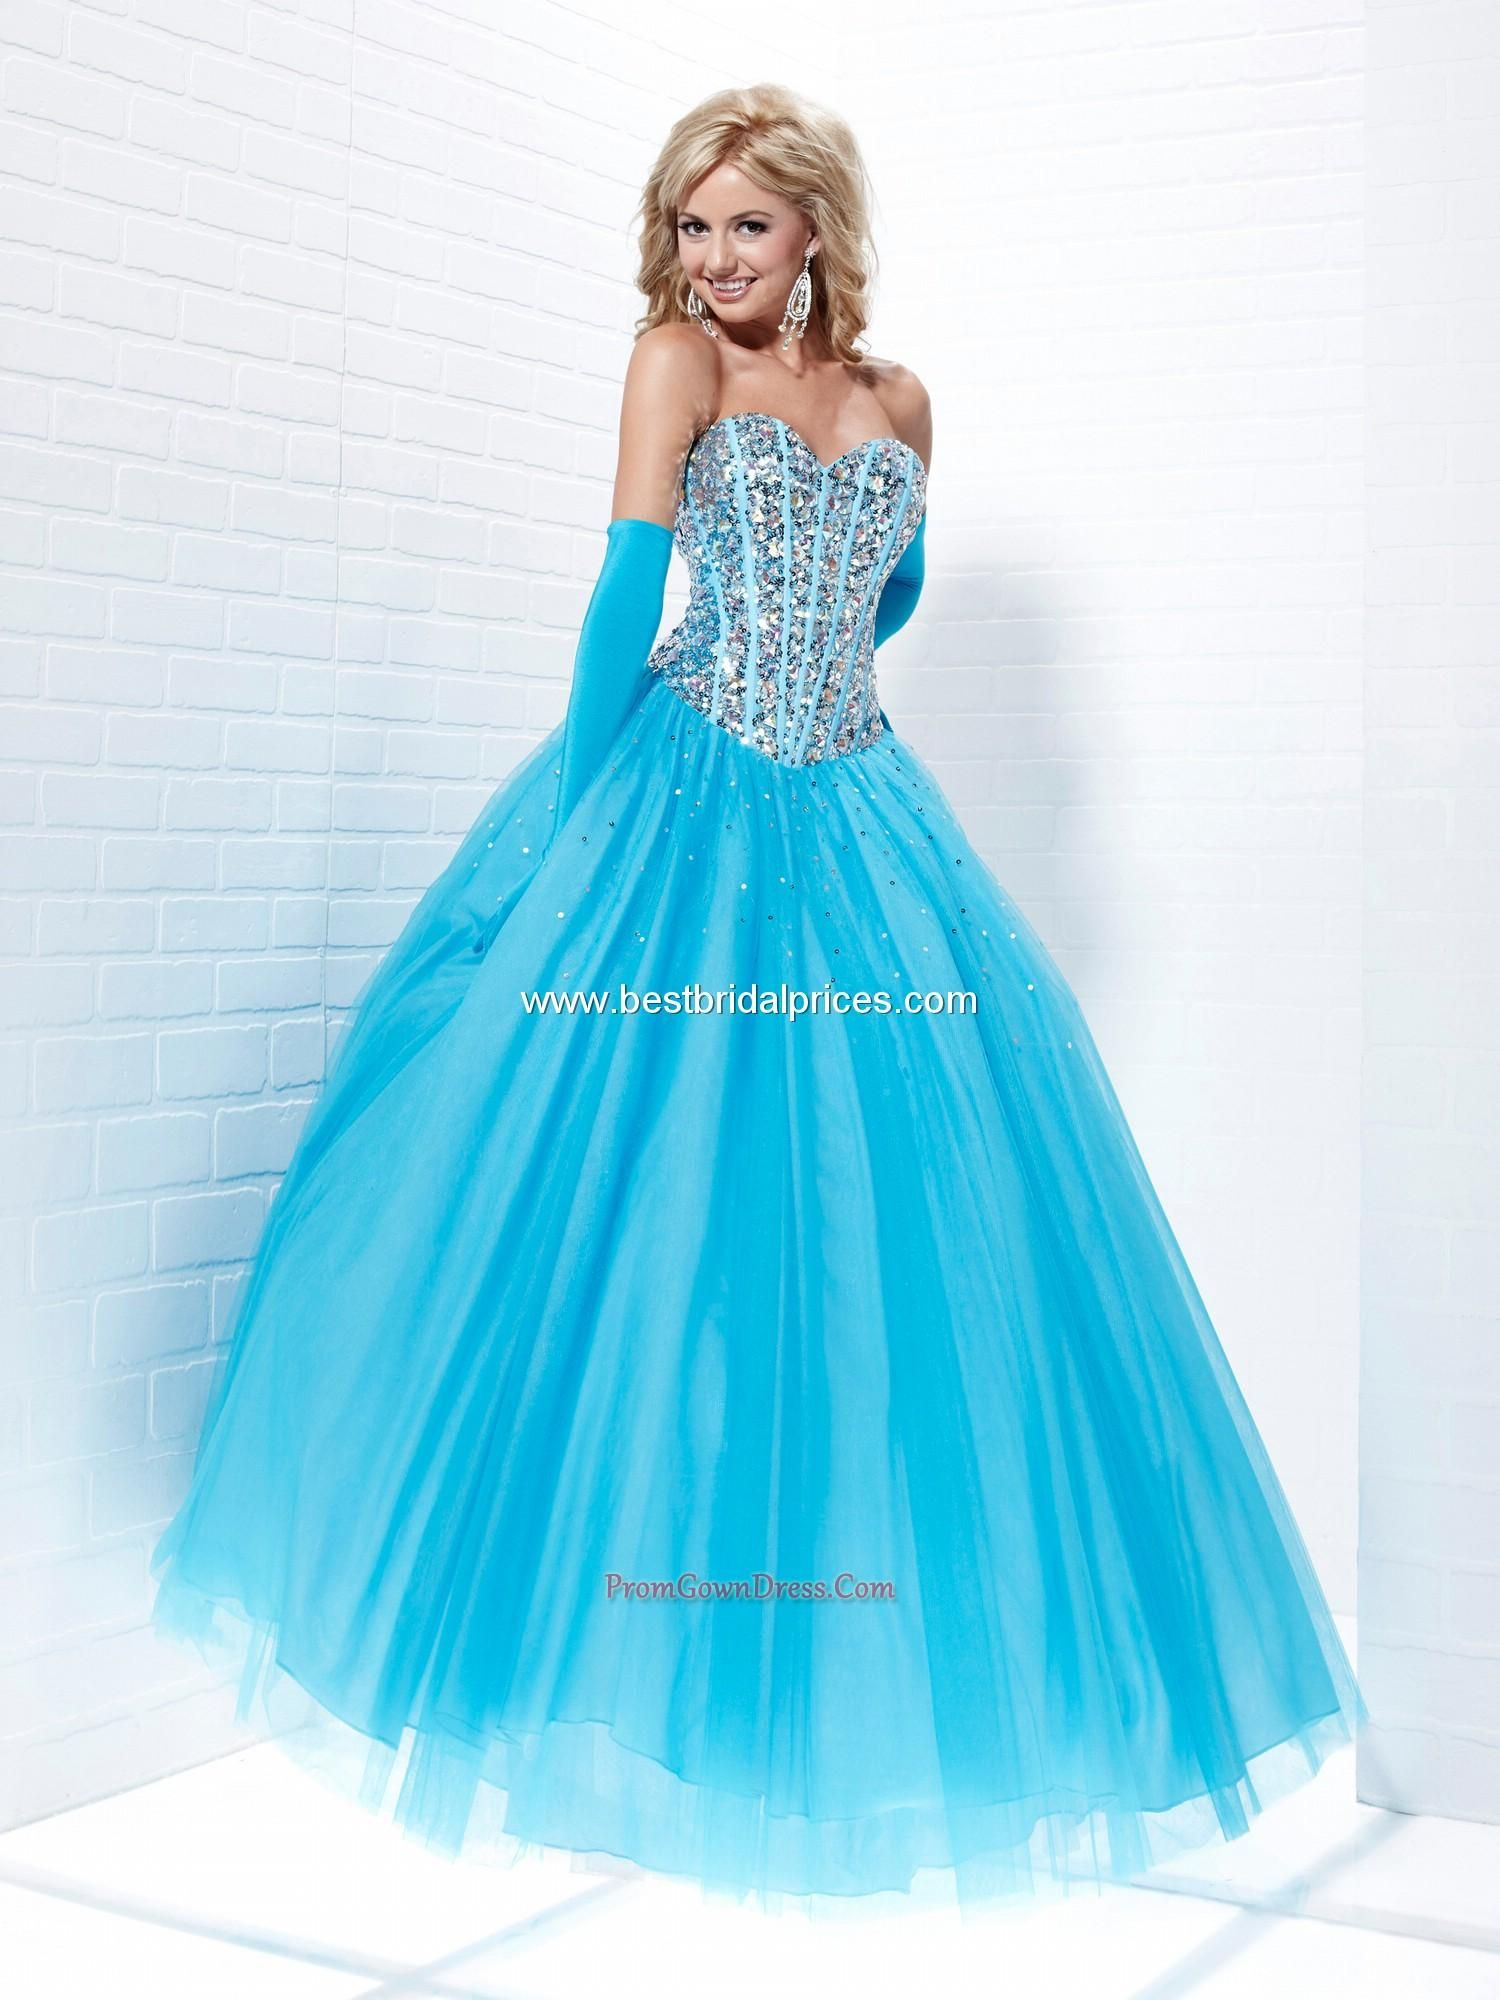 Blue Ball Gowns | dresses > Sky Blue Prom Dresses > Cheap sky blue ...